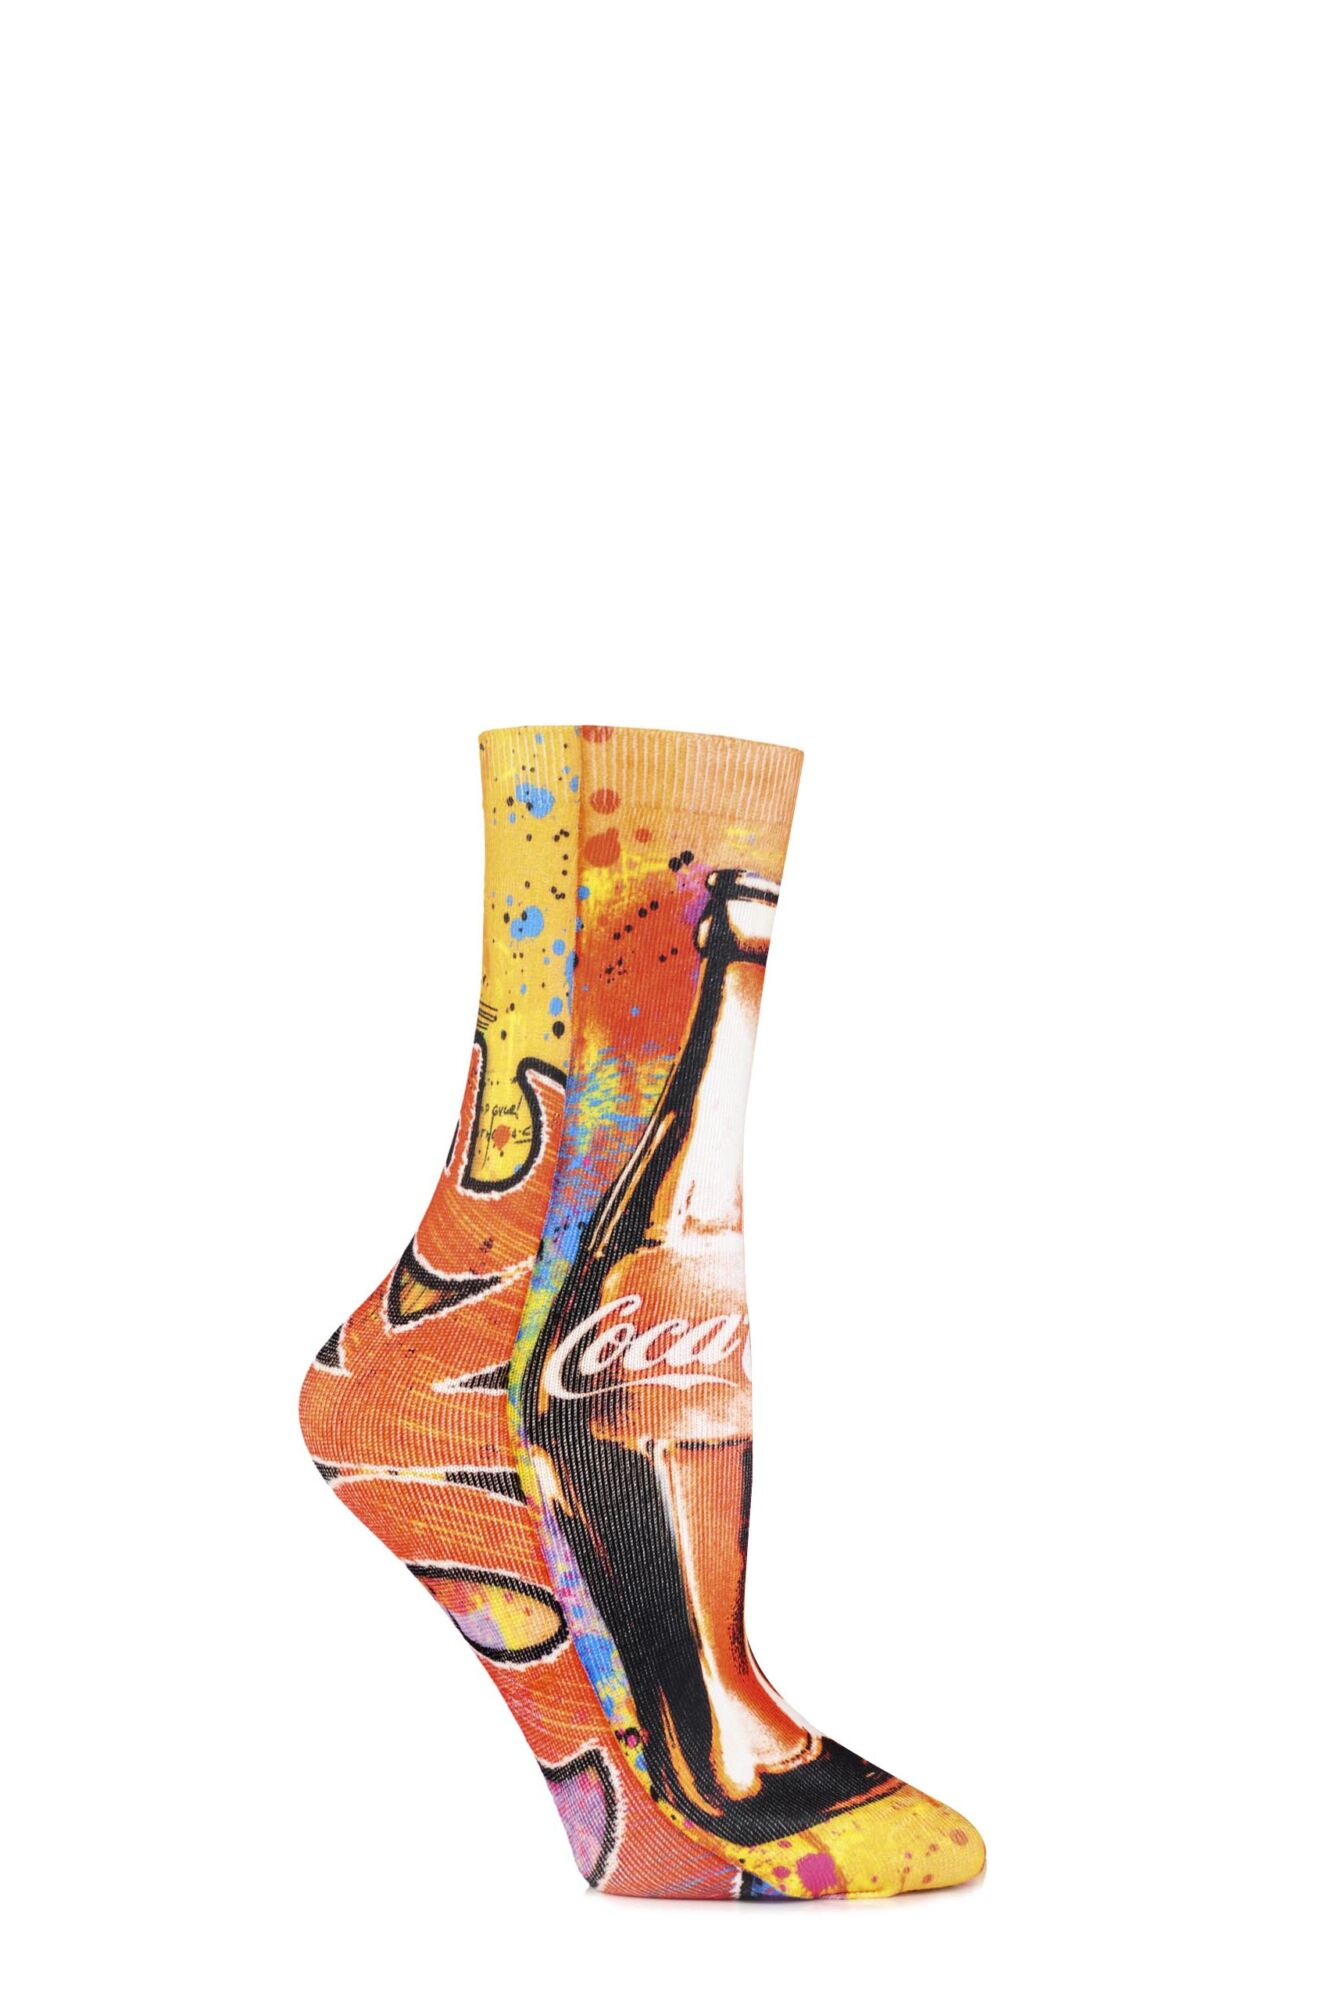 1 Pair Graffiti Bottle Printed Socks Ladies - Coca Cola